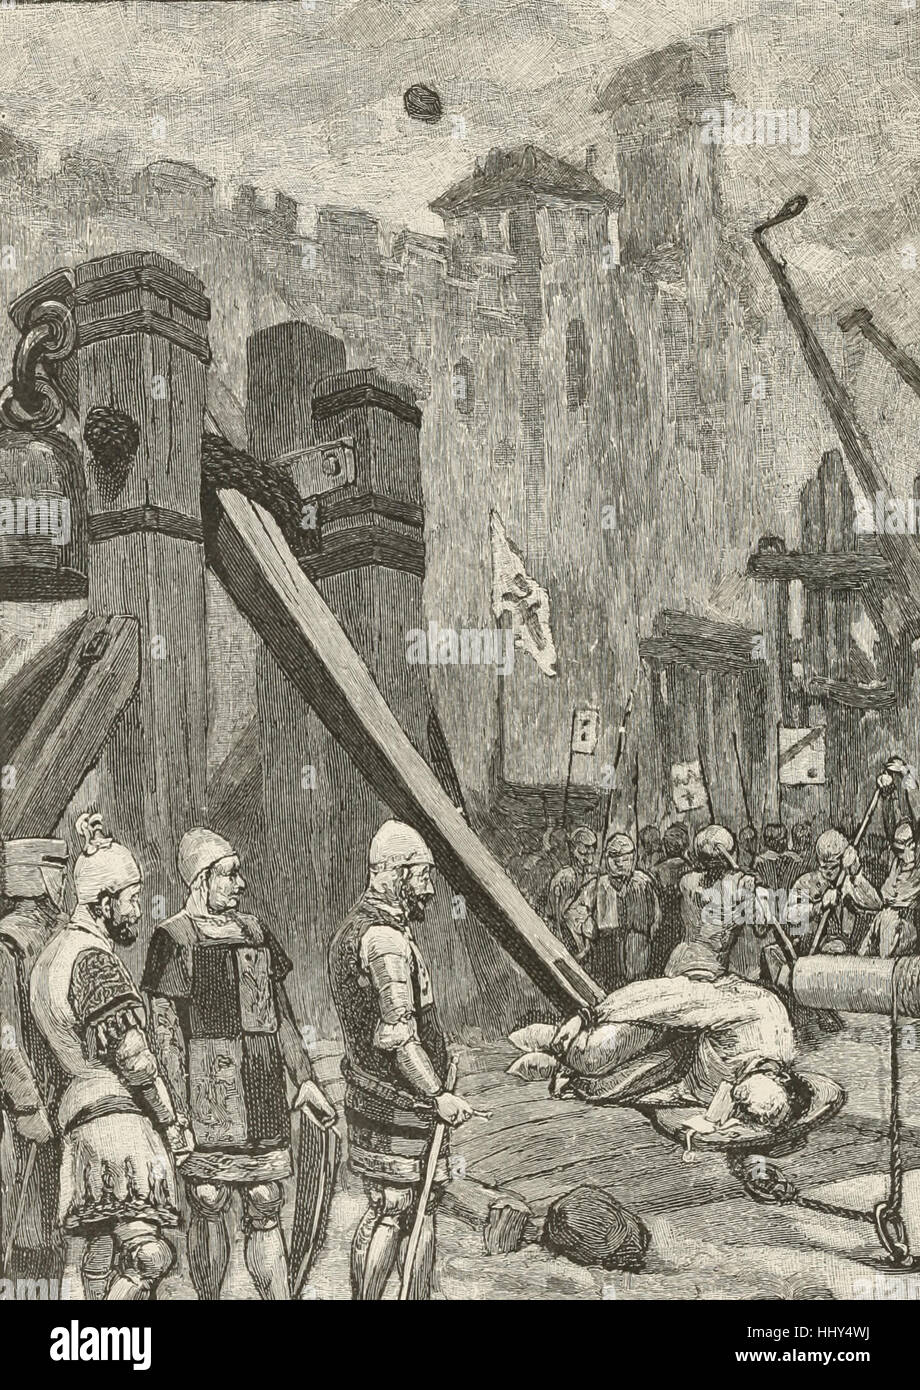 How the French flung a messenger over the walls into Auberoche during the Hundred Years War - Stock Image